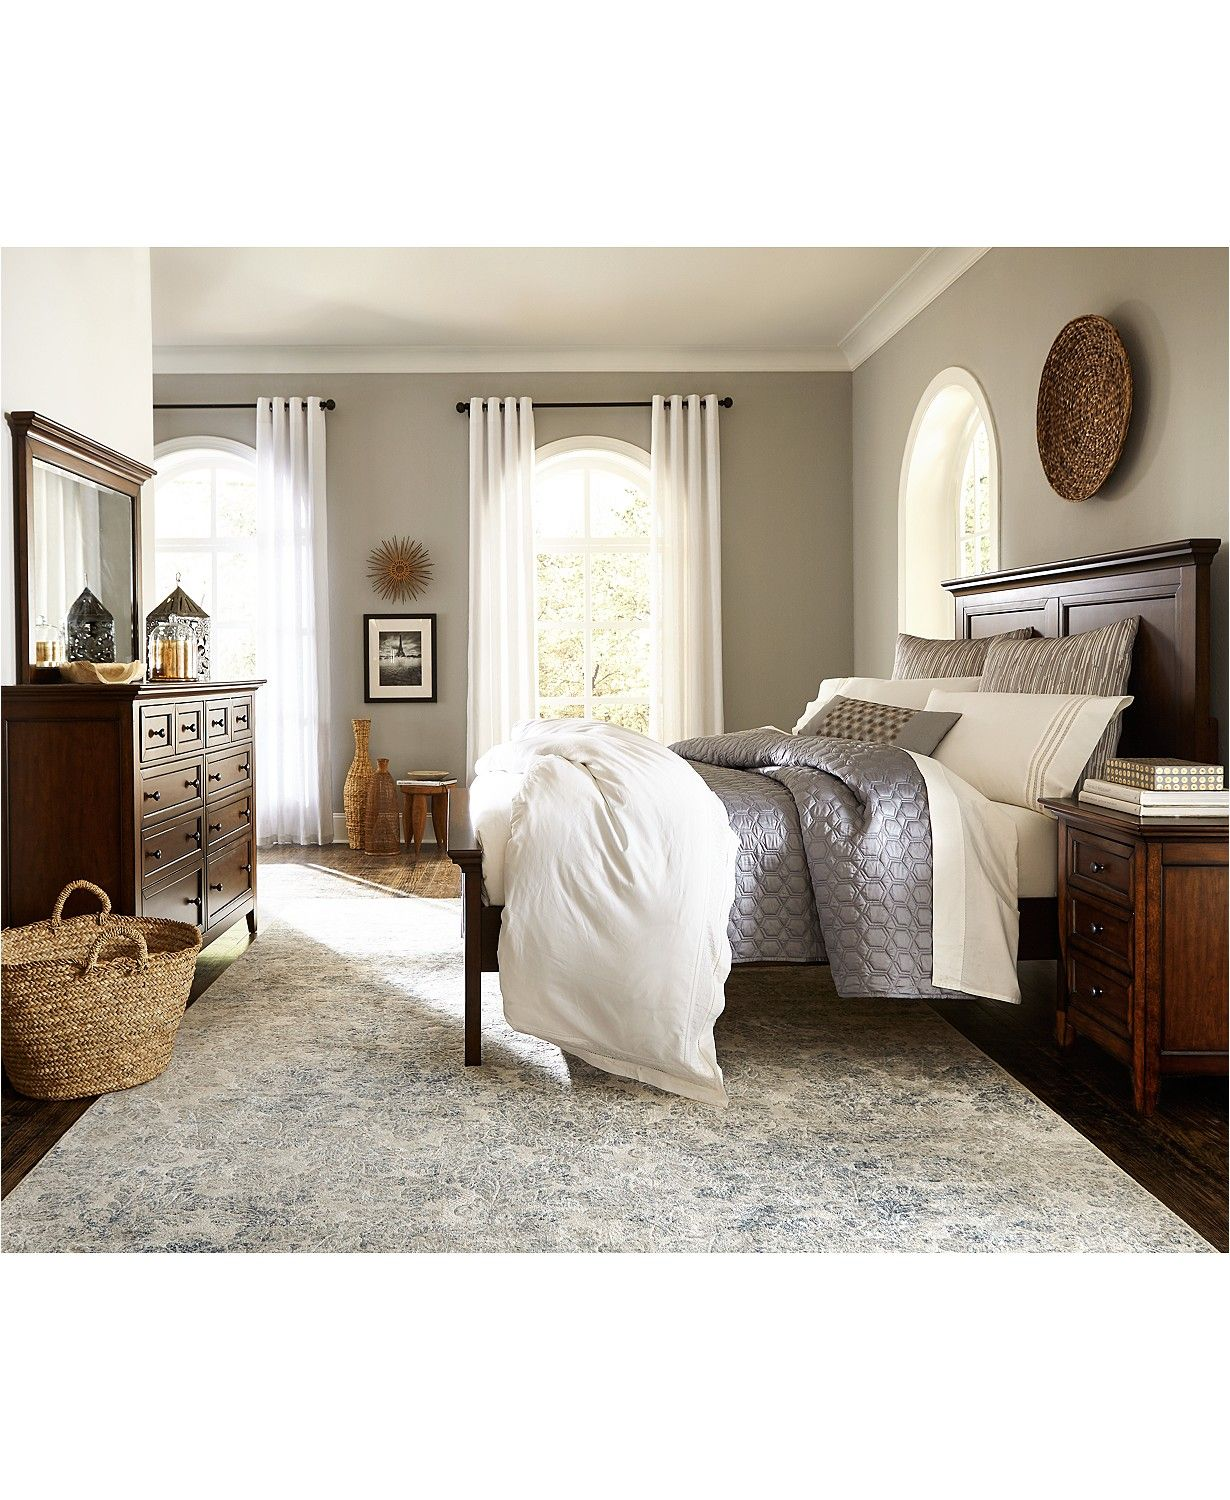 matteo bedroom furniture collection created for macy's